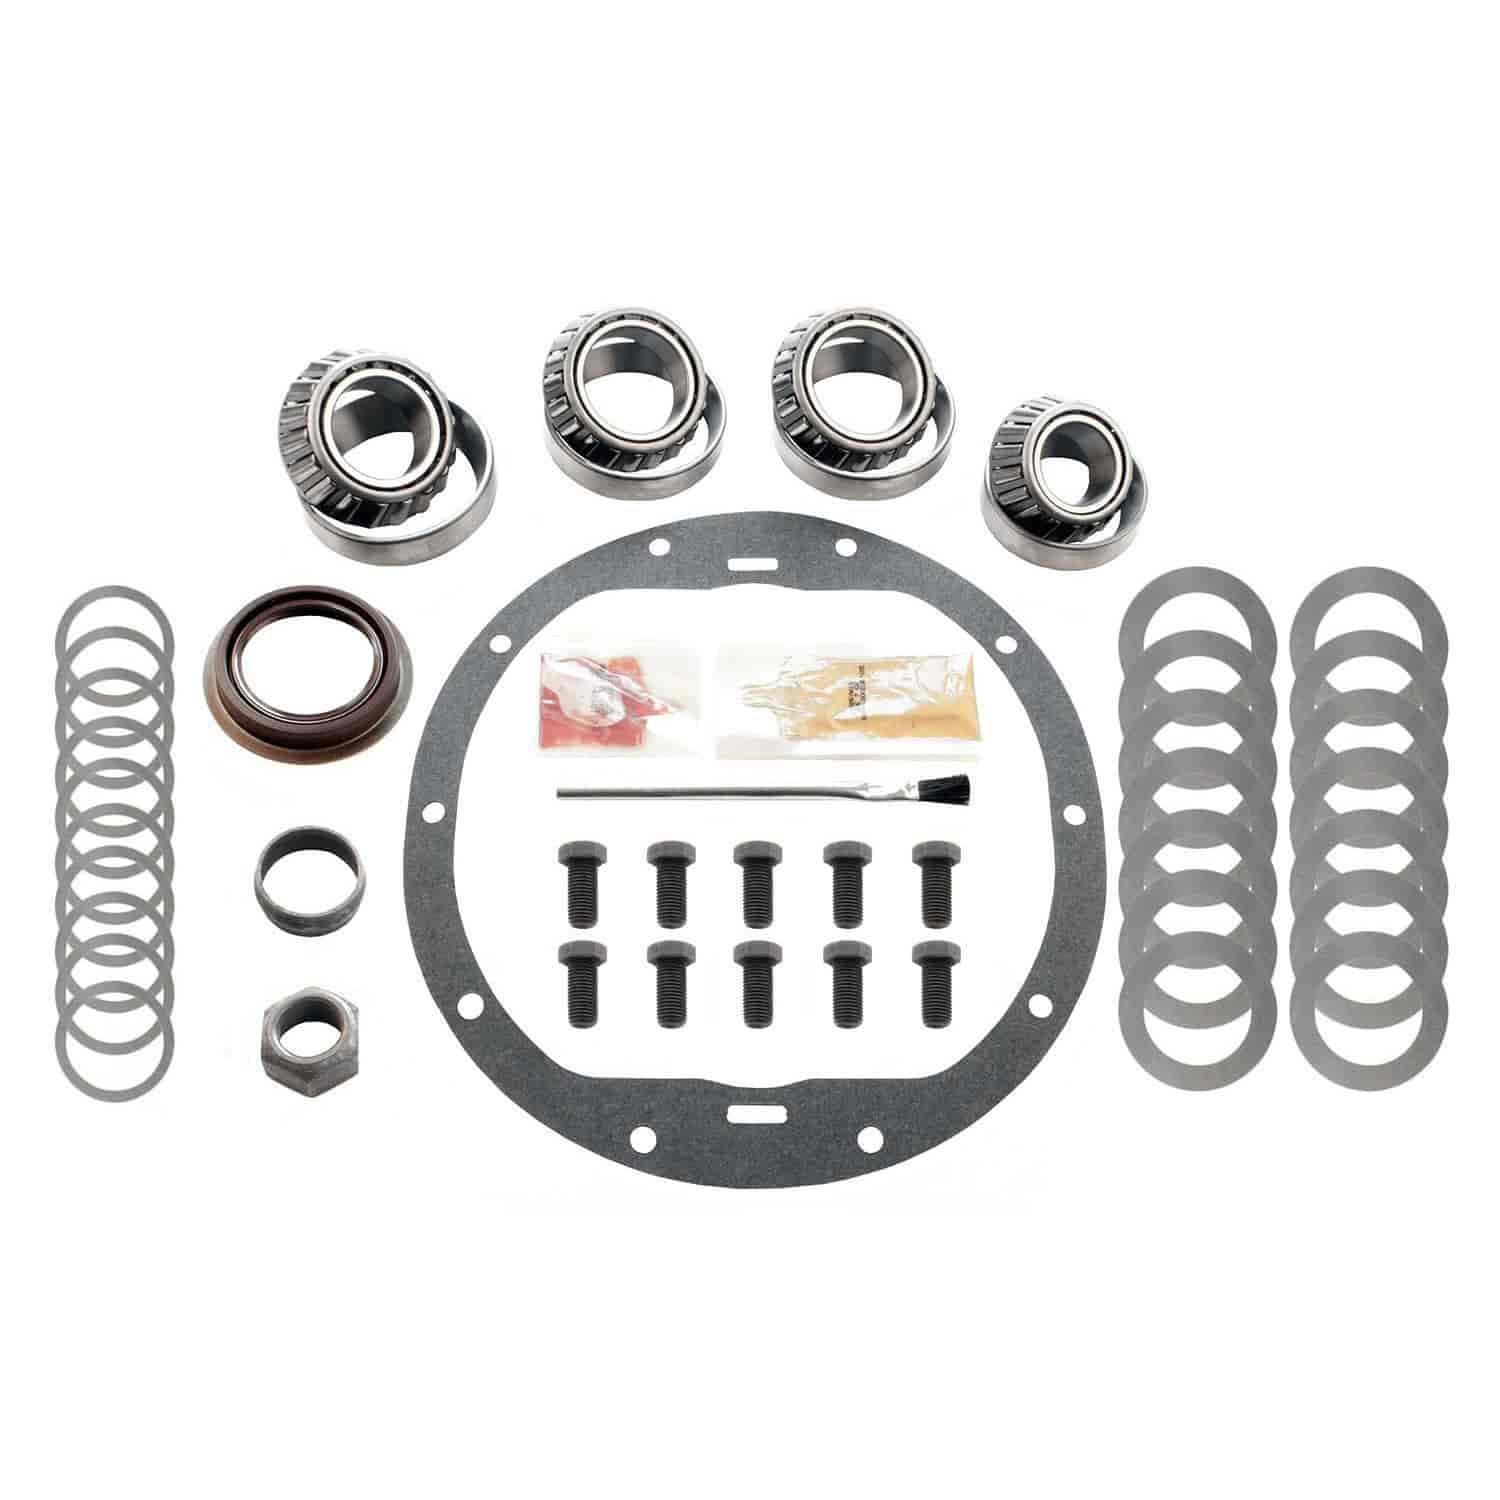 Motive Gear R10RLMKT - Motive Gear Differential Bearing Kits